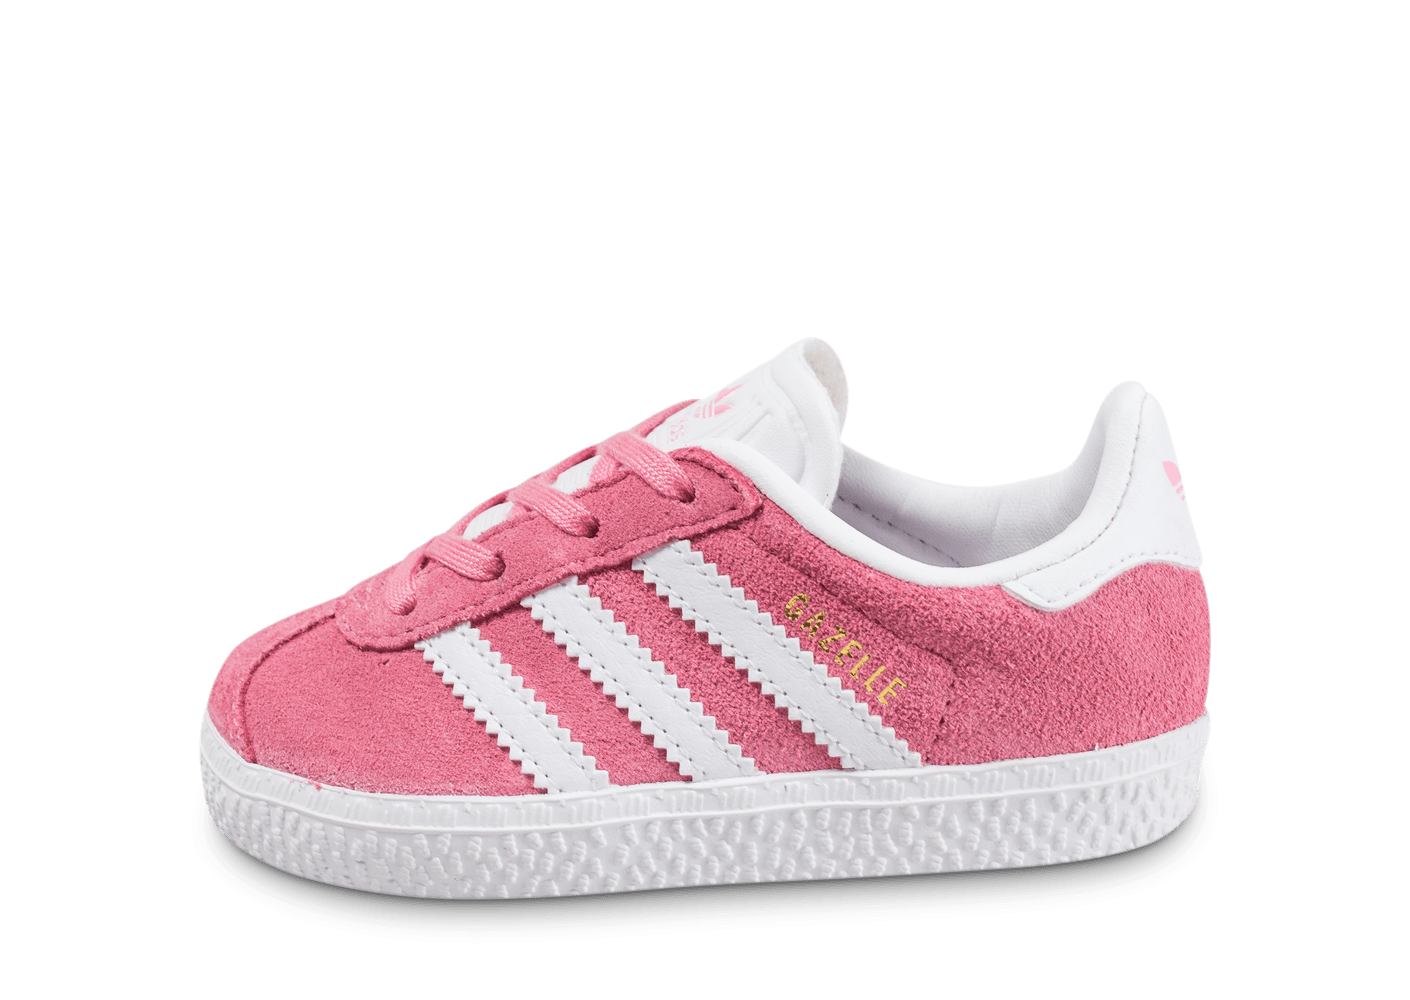 adidas gazelle b b rose chaussures adidas chausport. Black Bedroom Furniture Sets. Home Design Ideas